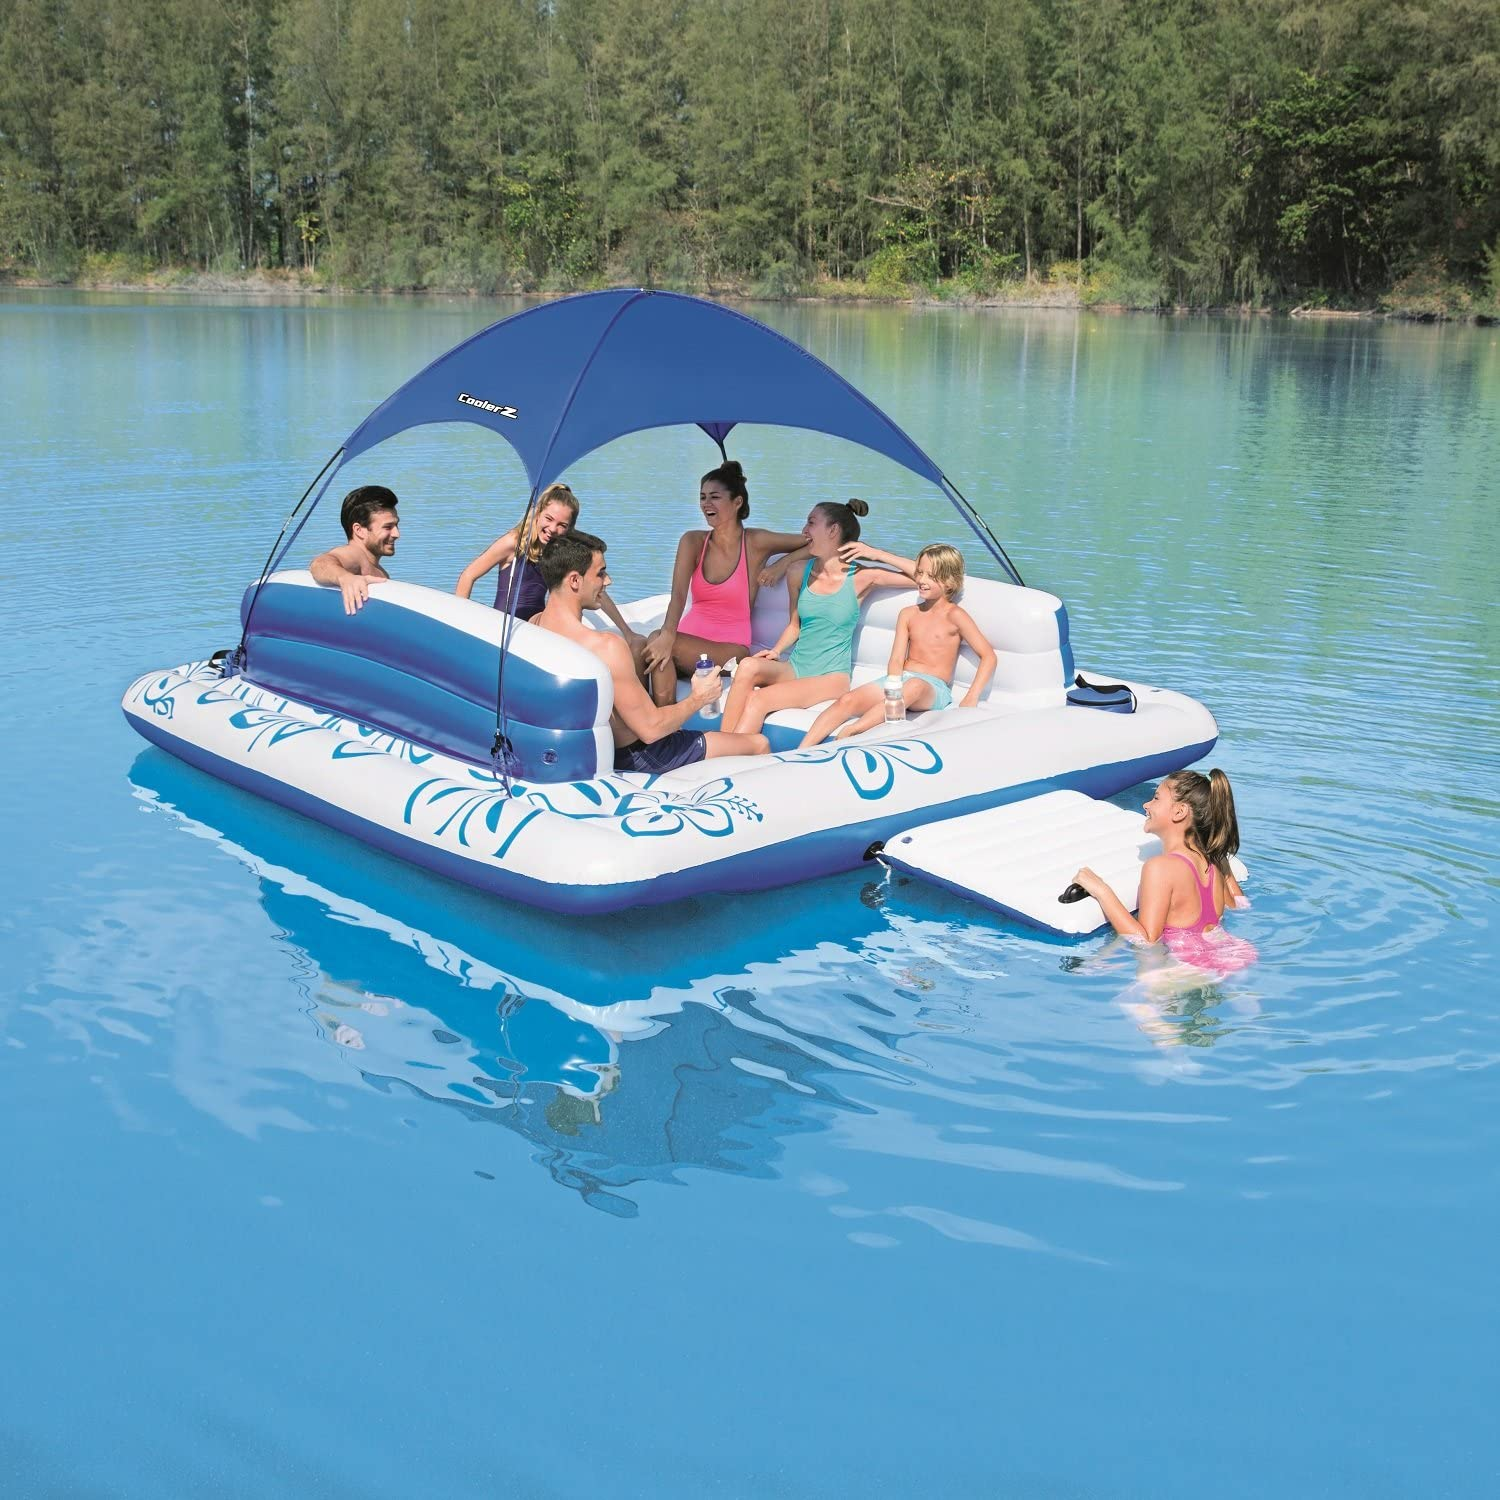 Large Inflatable Floating Island 8-Person UV Sun Shade Lounge Raft - Morealis